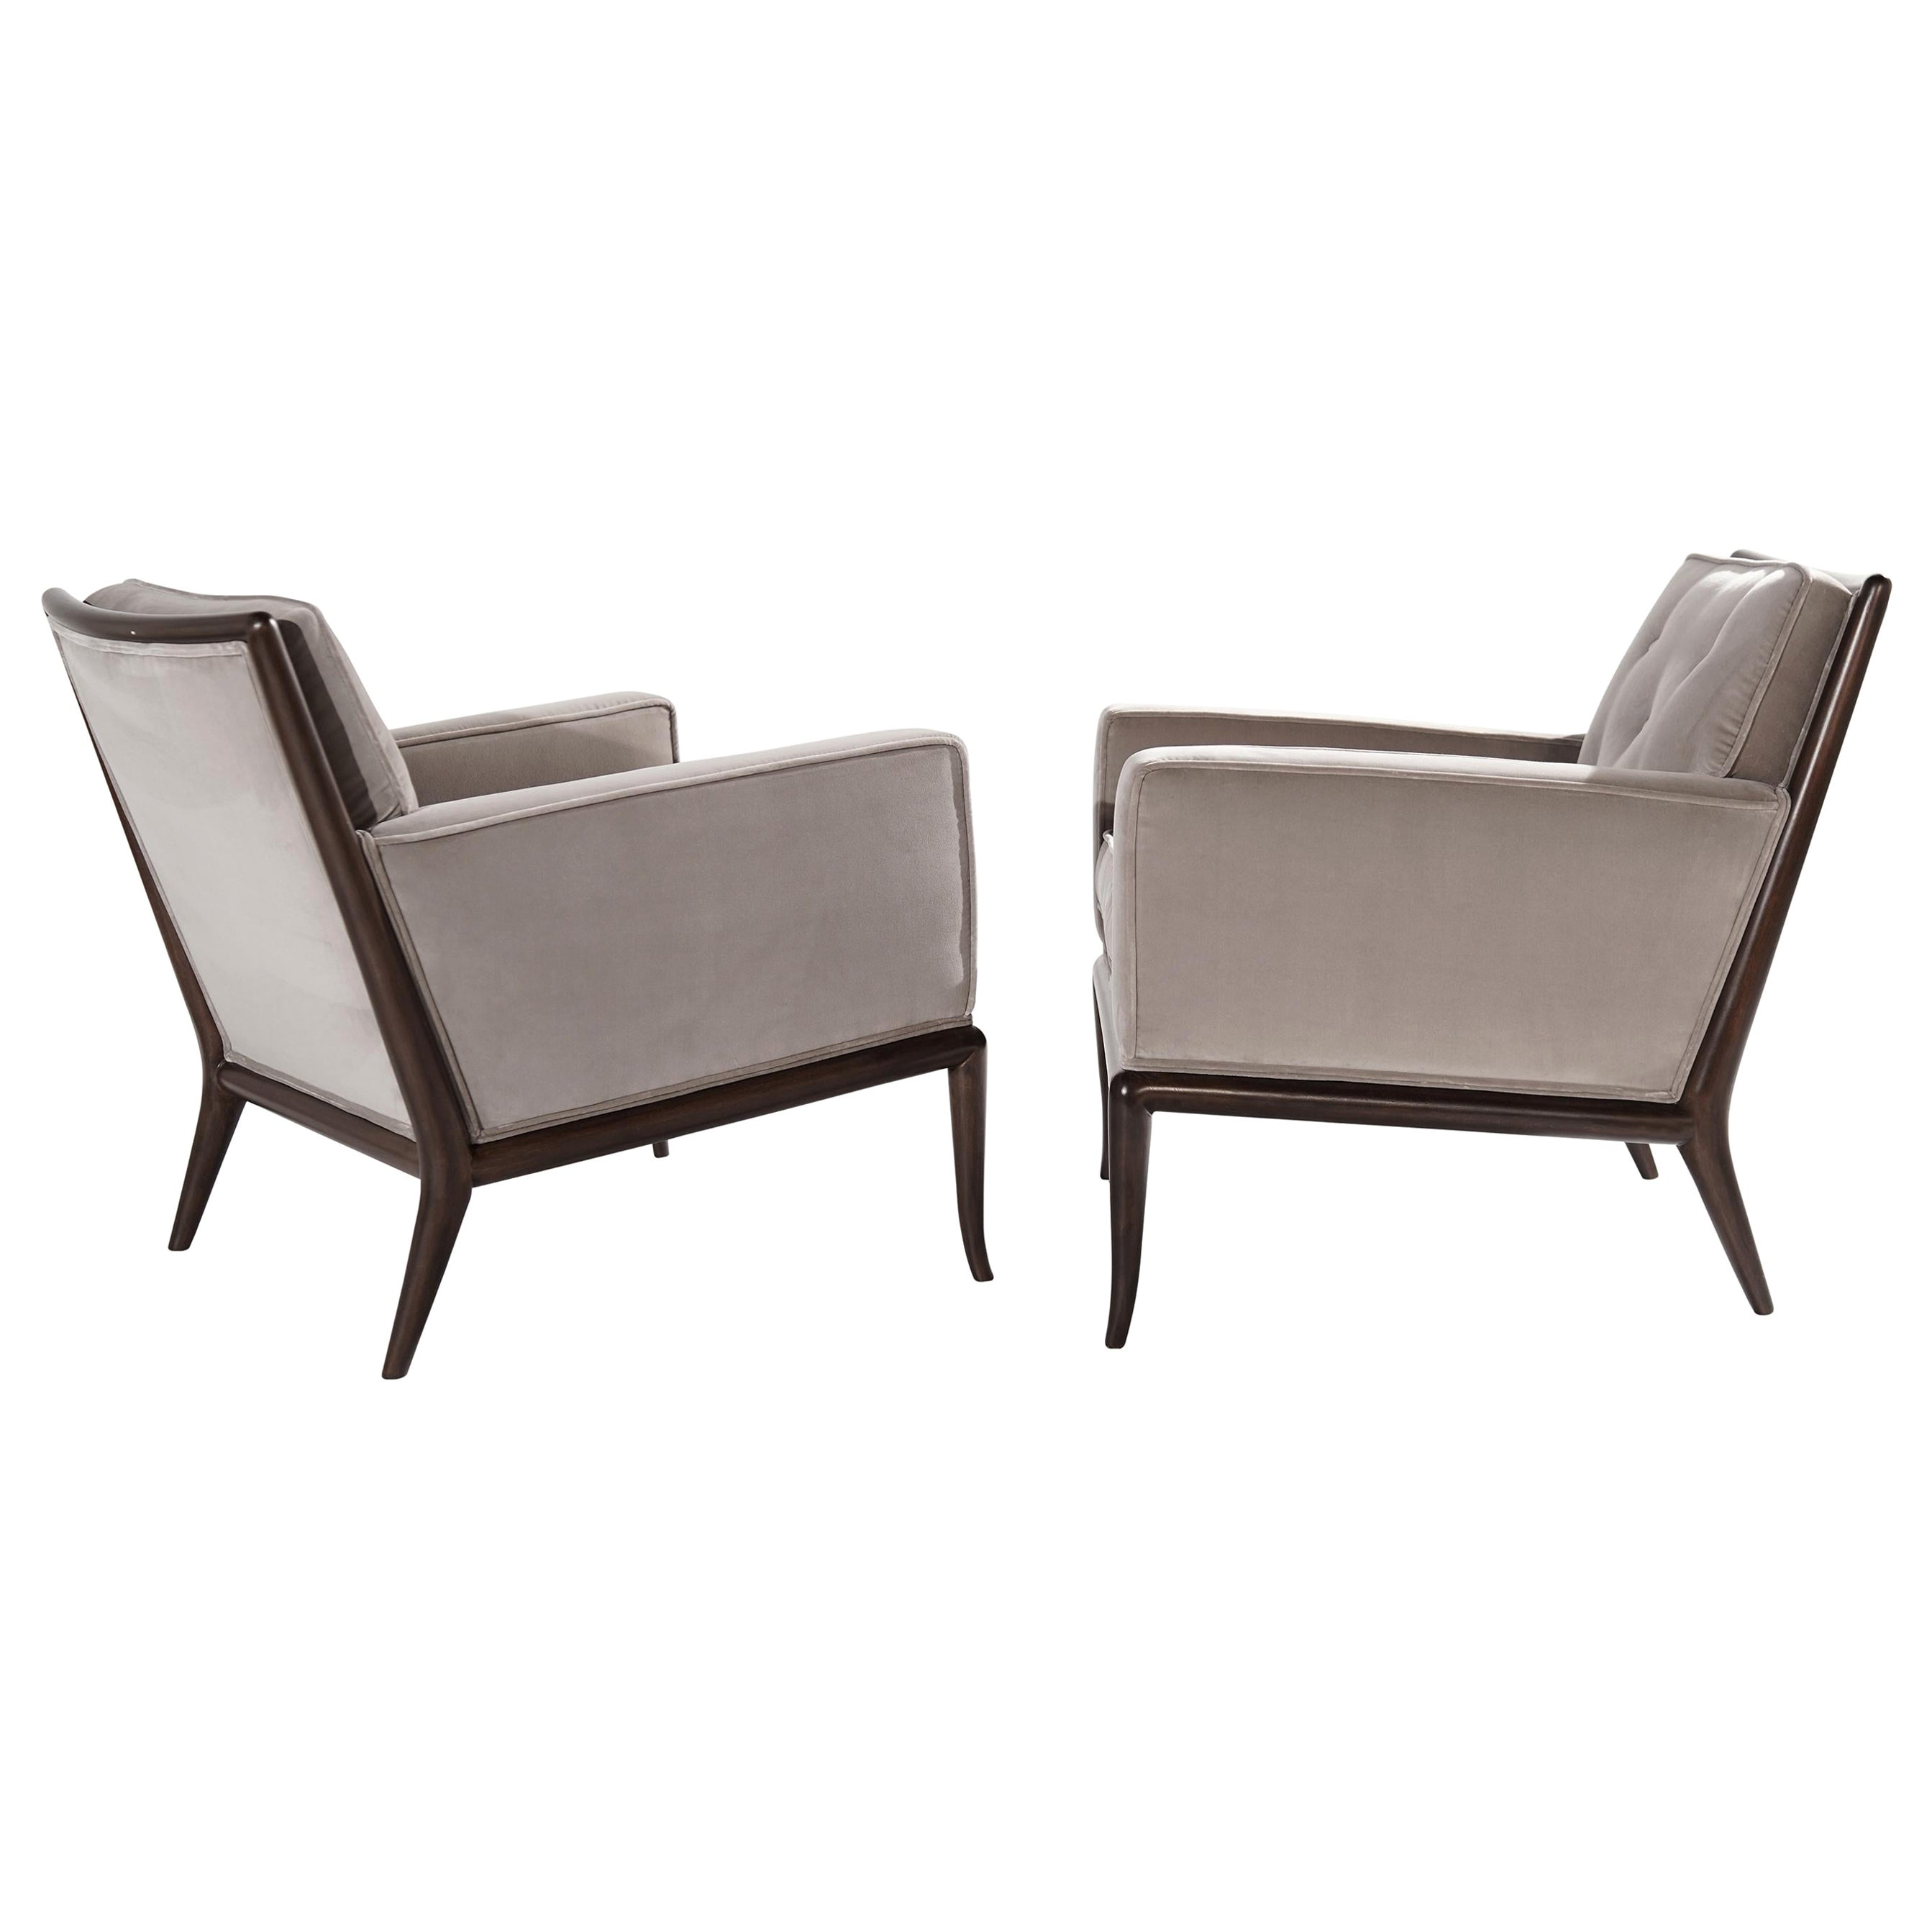 Pair of Club Chairs by T.H. Robsjohn-Gibbings for Widdicomb, 1950s